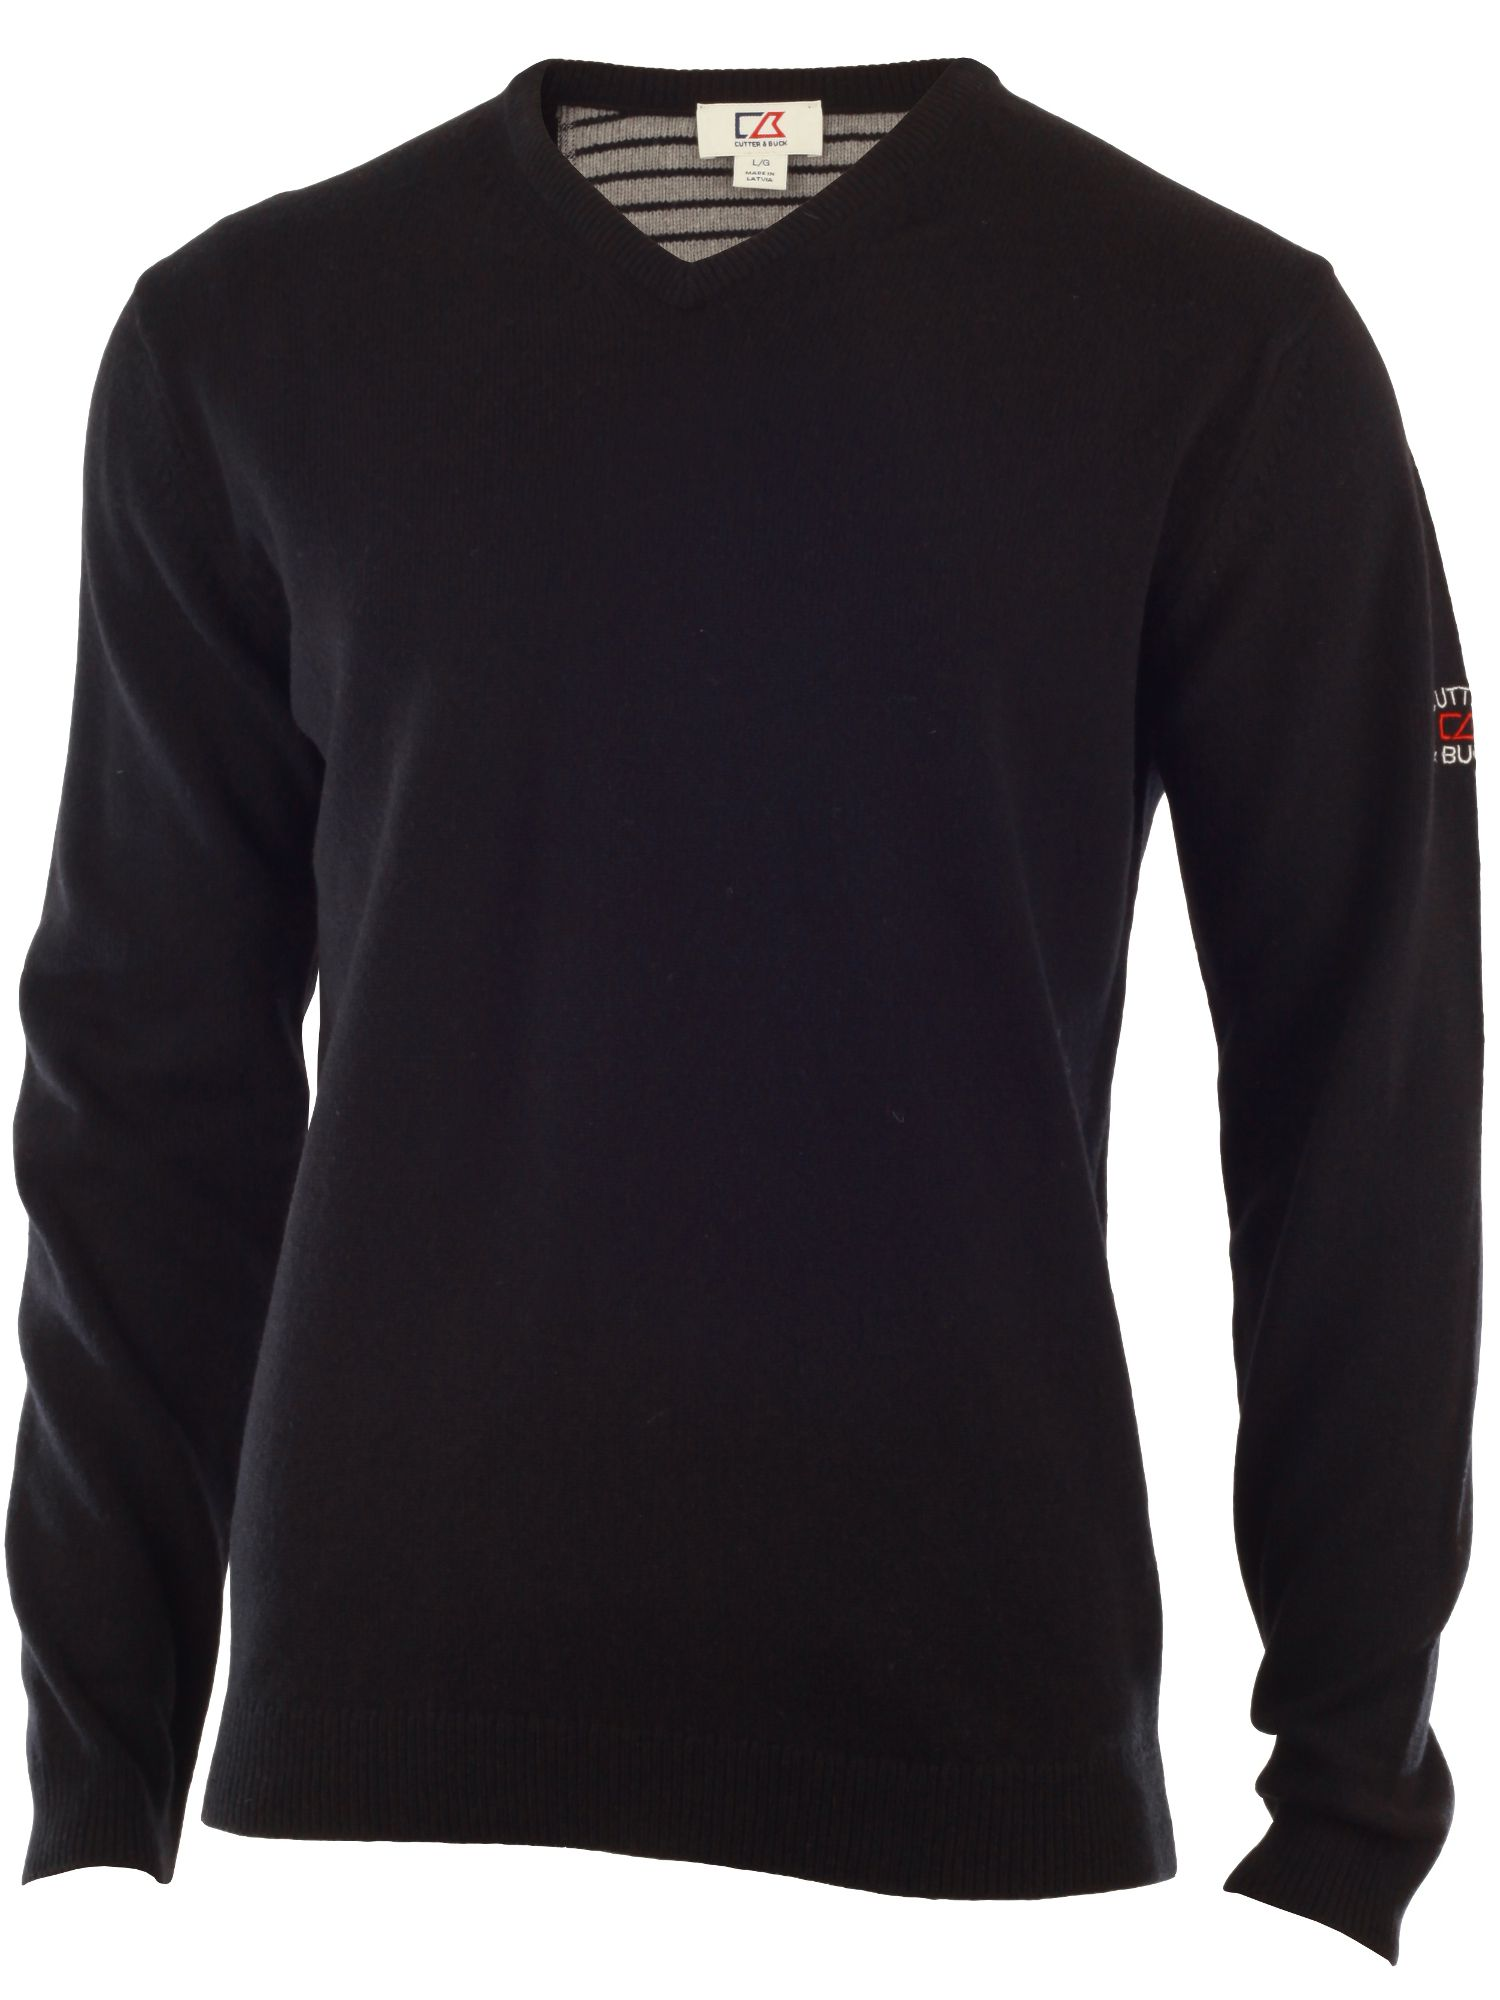 Cutter and Buck Men's Cutter and Buck Lambswool v neck sweater, Black